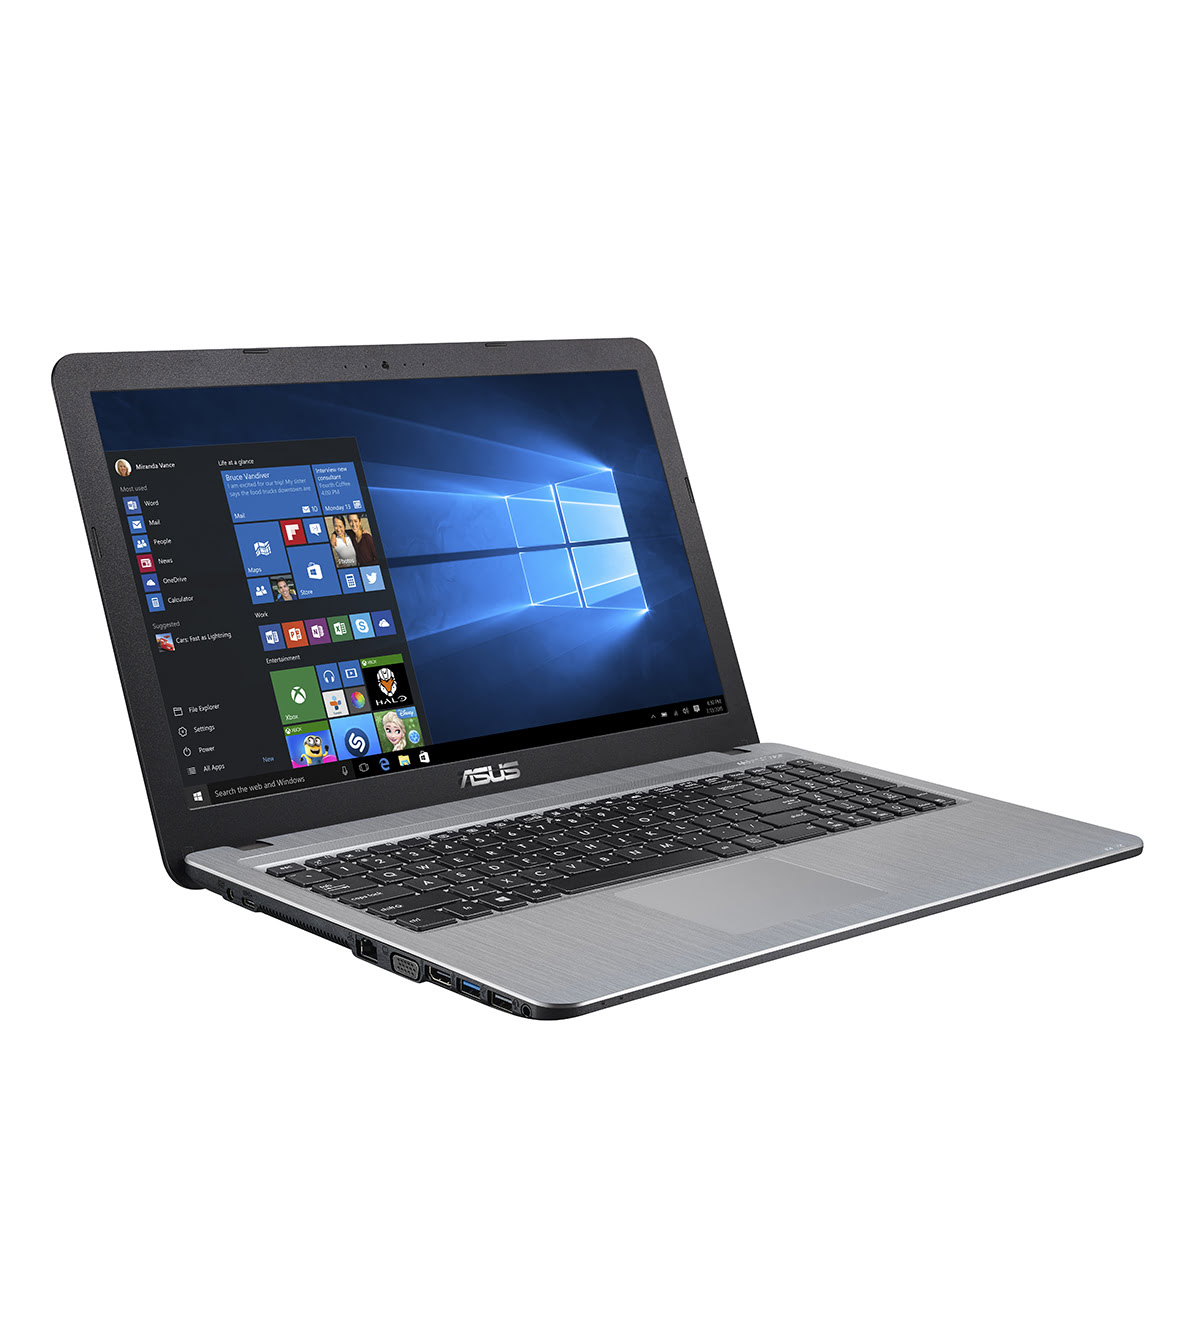 Asus 90NB0B03-M25310 - PC portable Asus - Cybertek.fr - 5